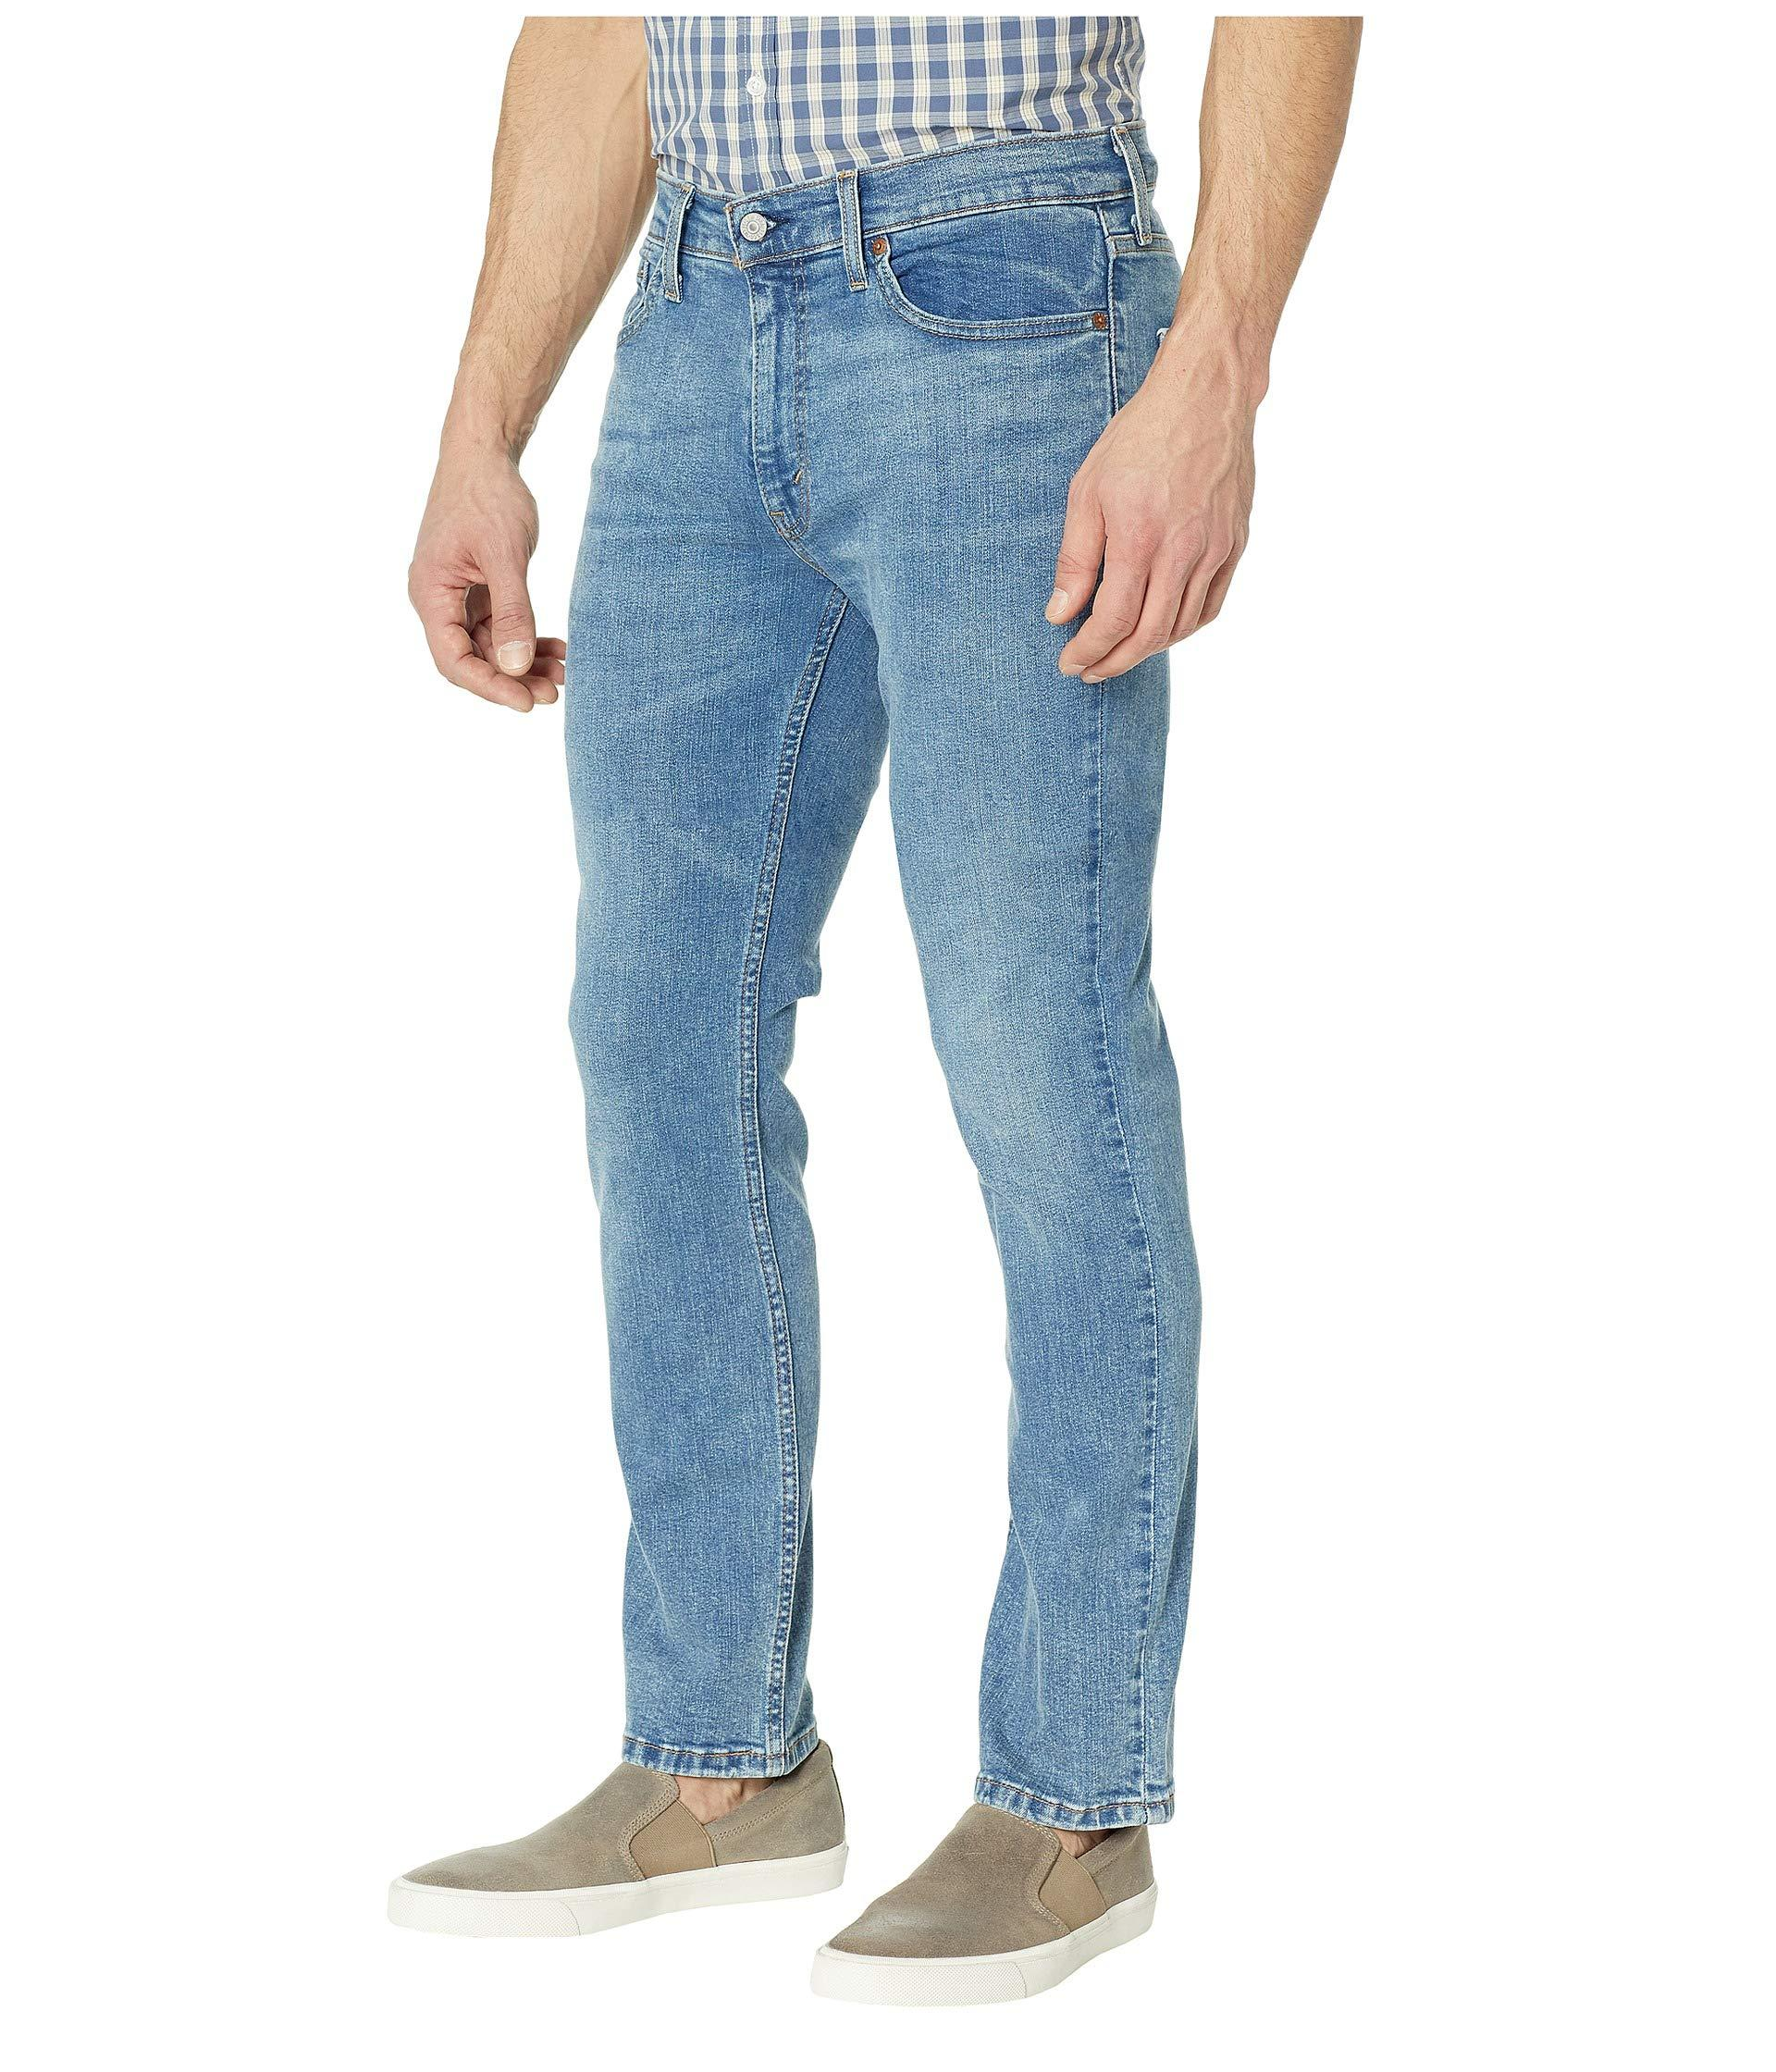 2cc20dd4bb6 Lyst - Levi's Levi's(r) Mens 511tm Slim (new Khaki 3d) Men's Jeans in Blue  for Men